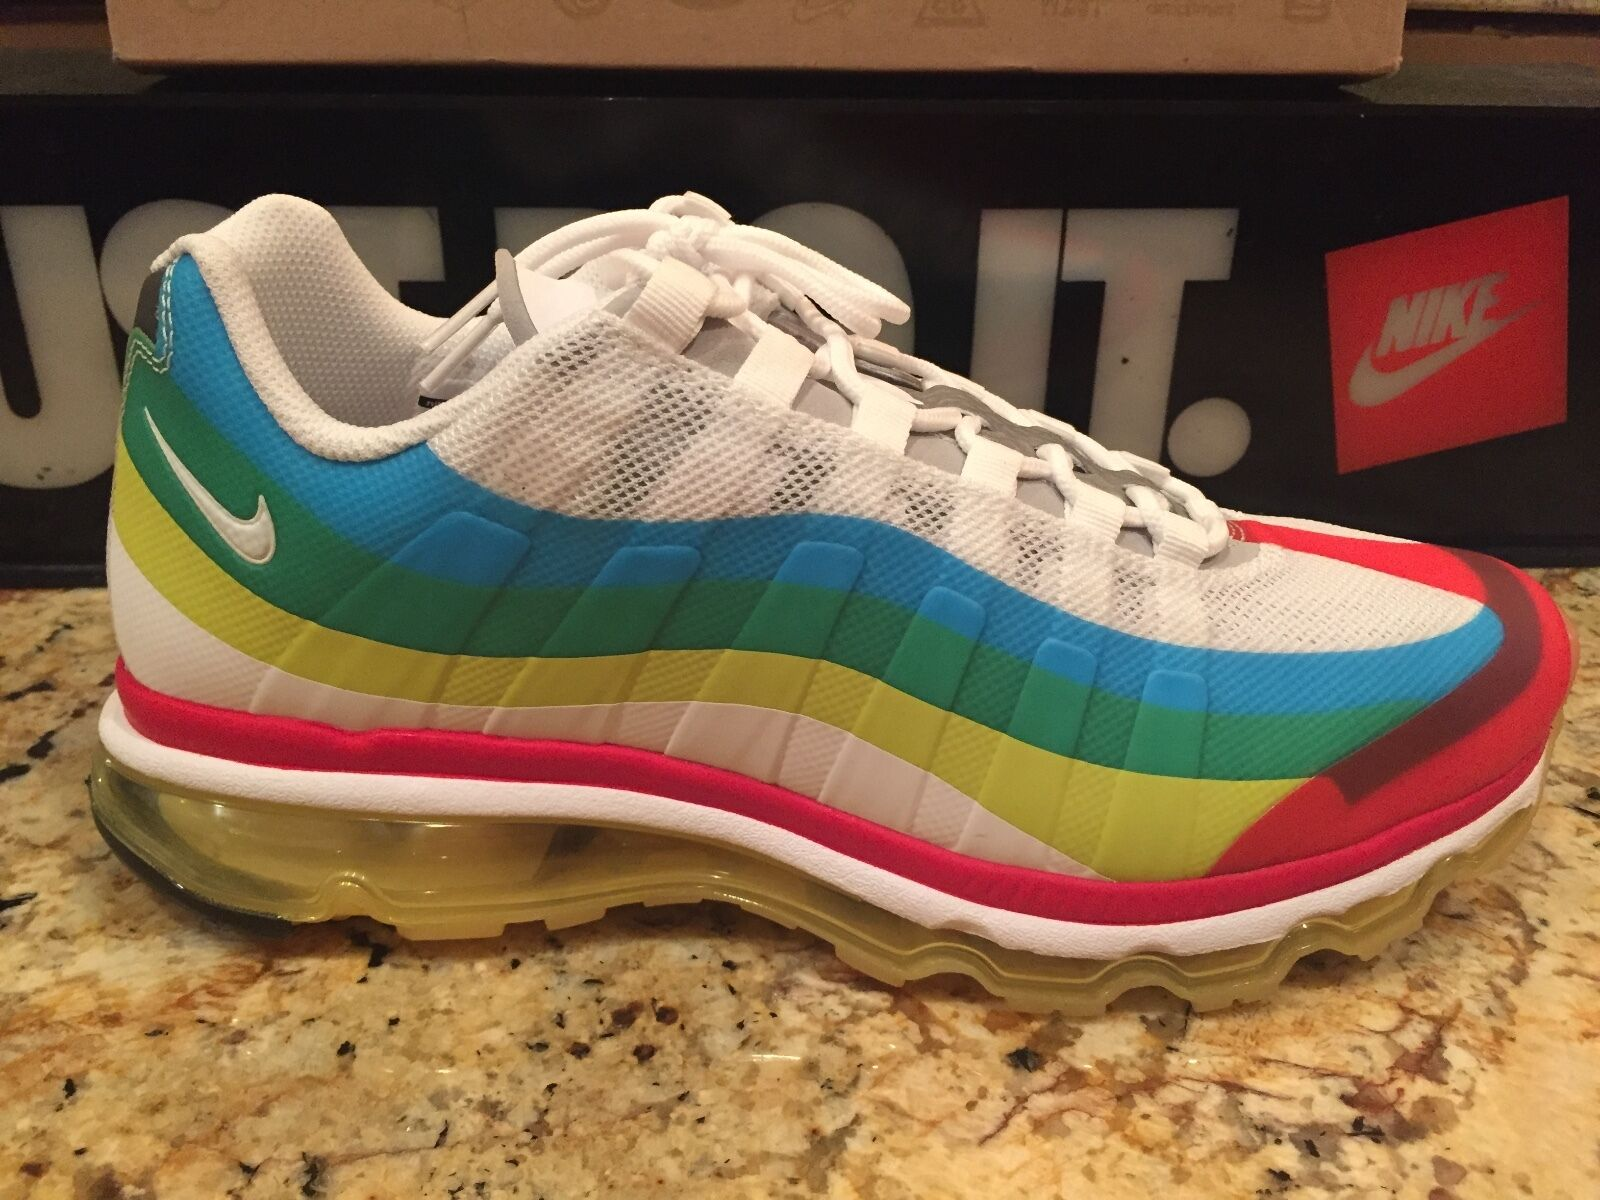 NIKE AIR MAX 95 SIZE 11 (+) WTM WHAT THE MAX 2012 DS RARE